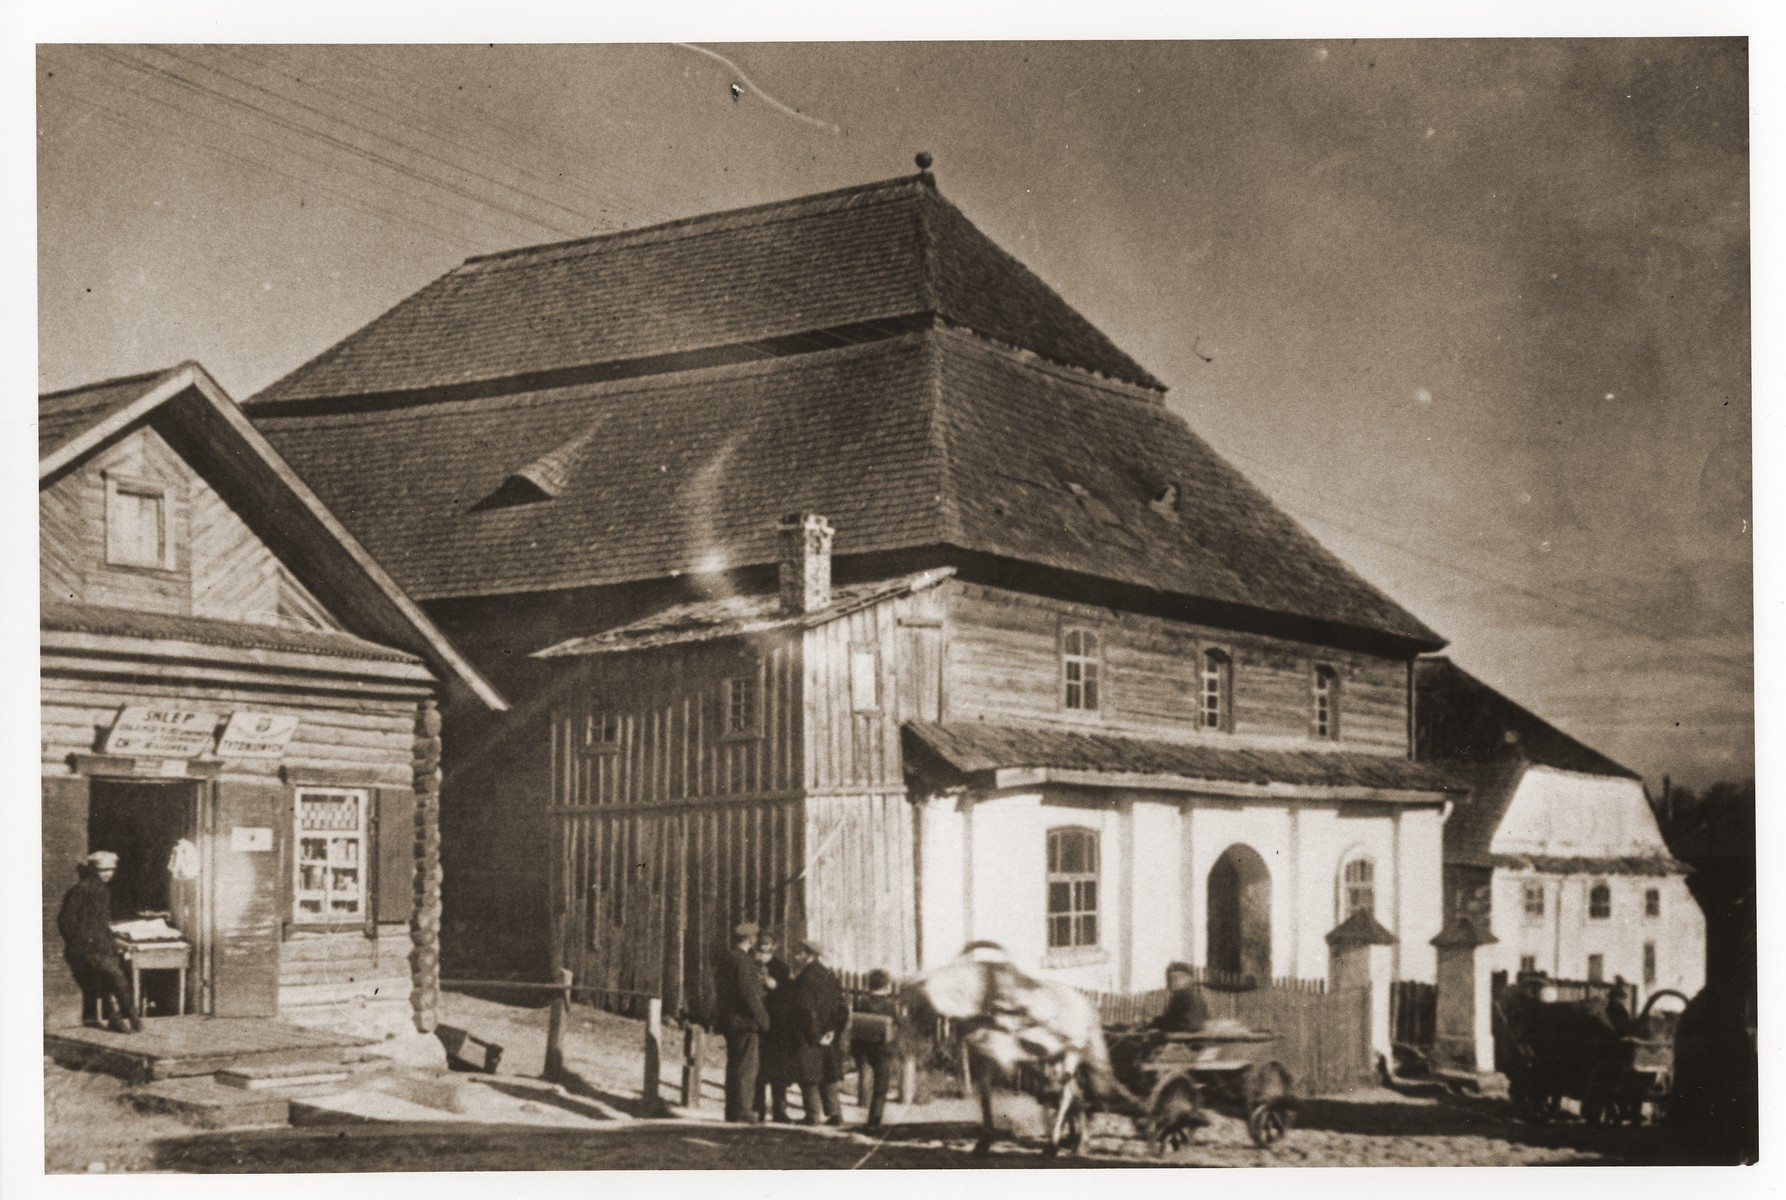 Exterior of the synagogue in Glebokie, Poland.